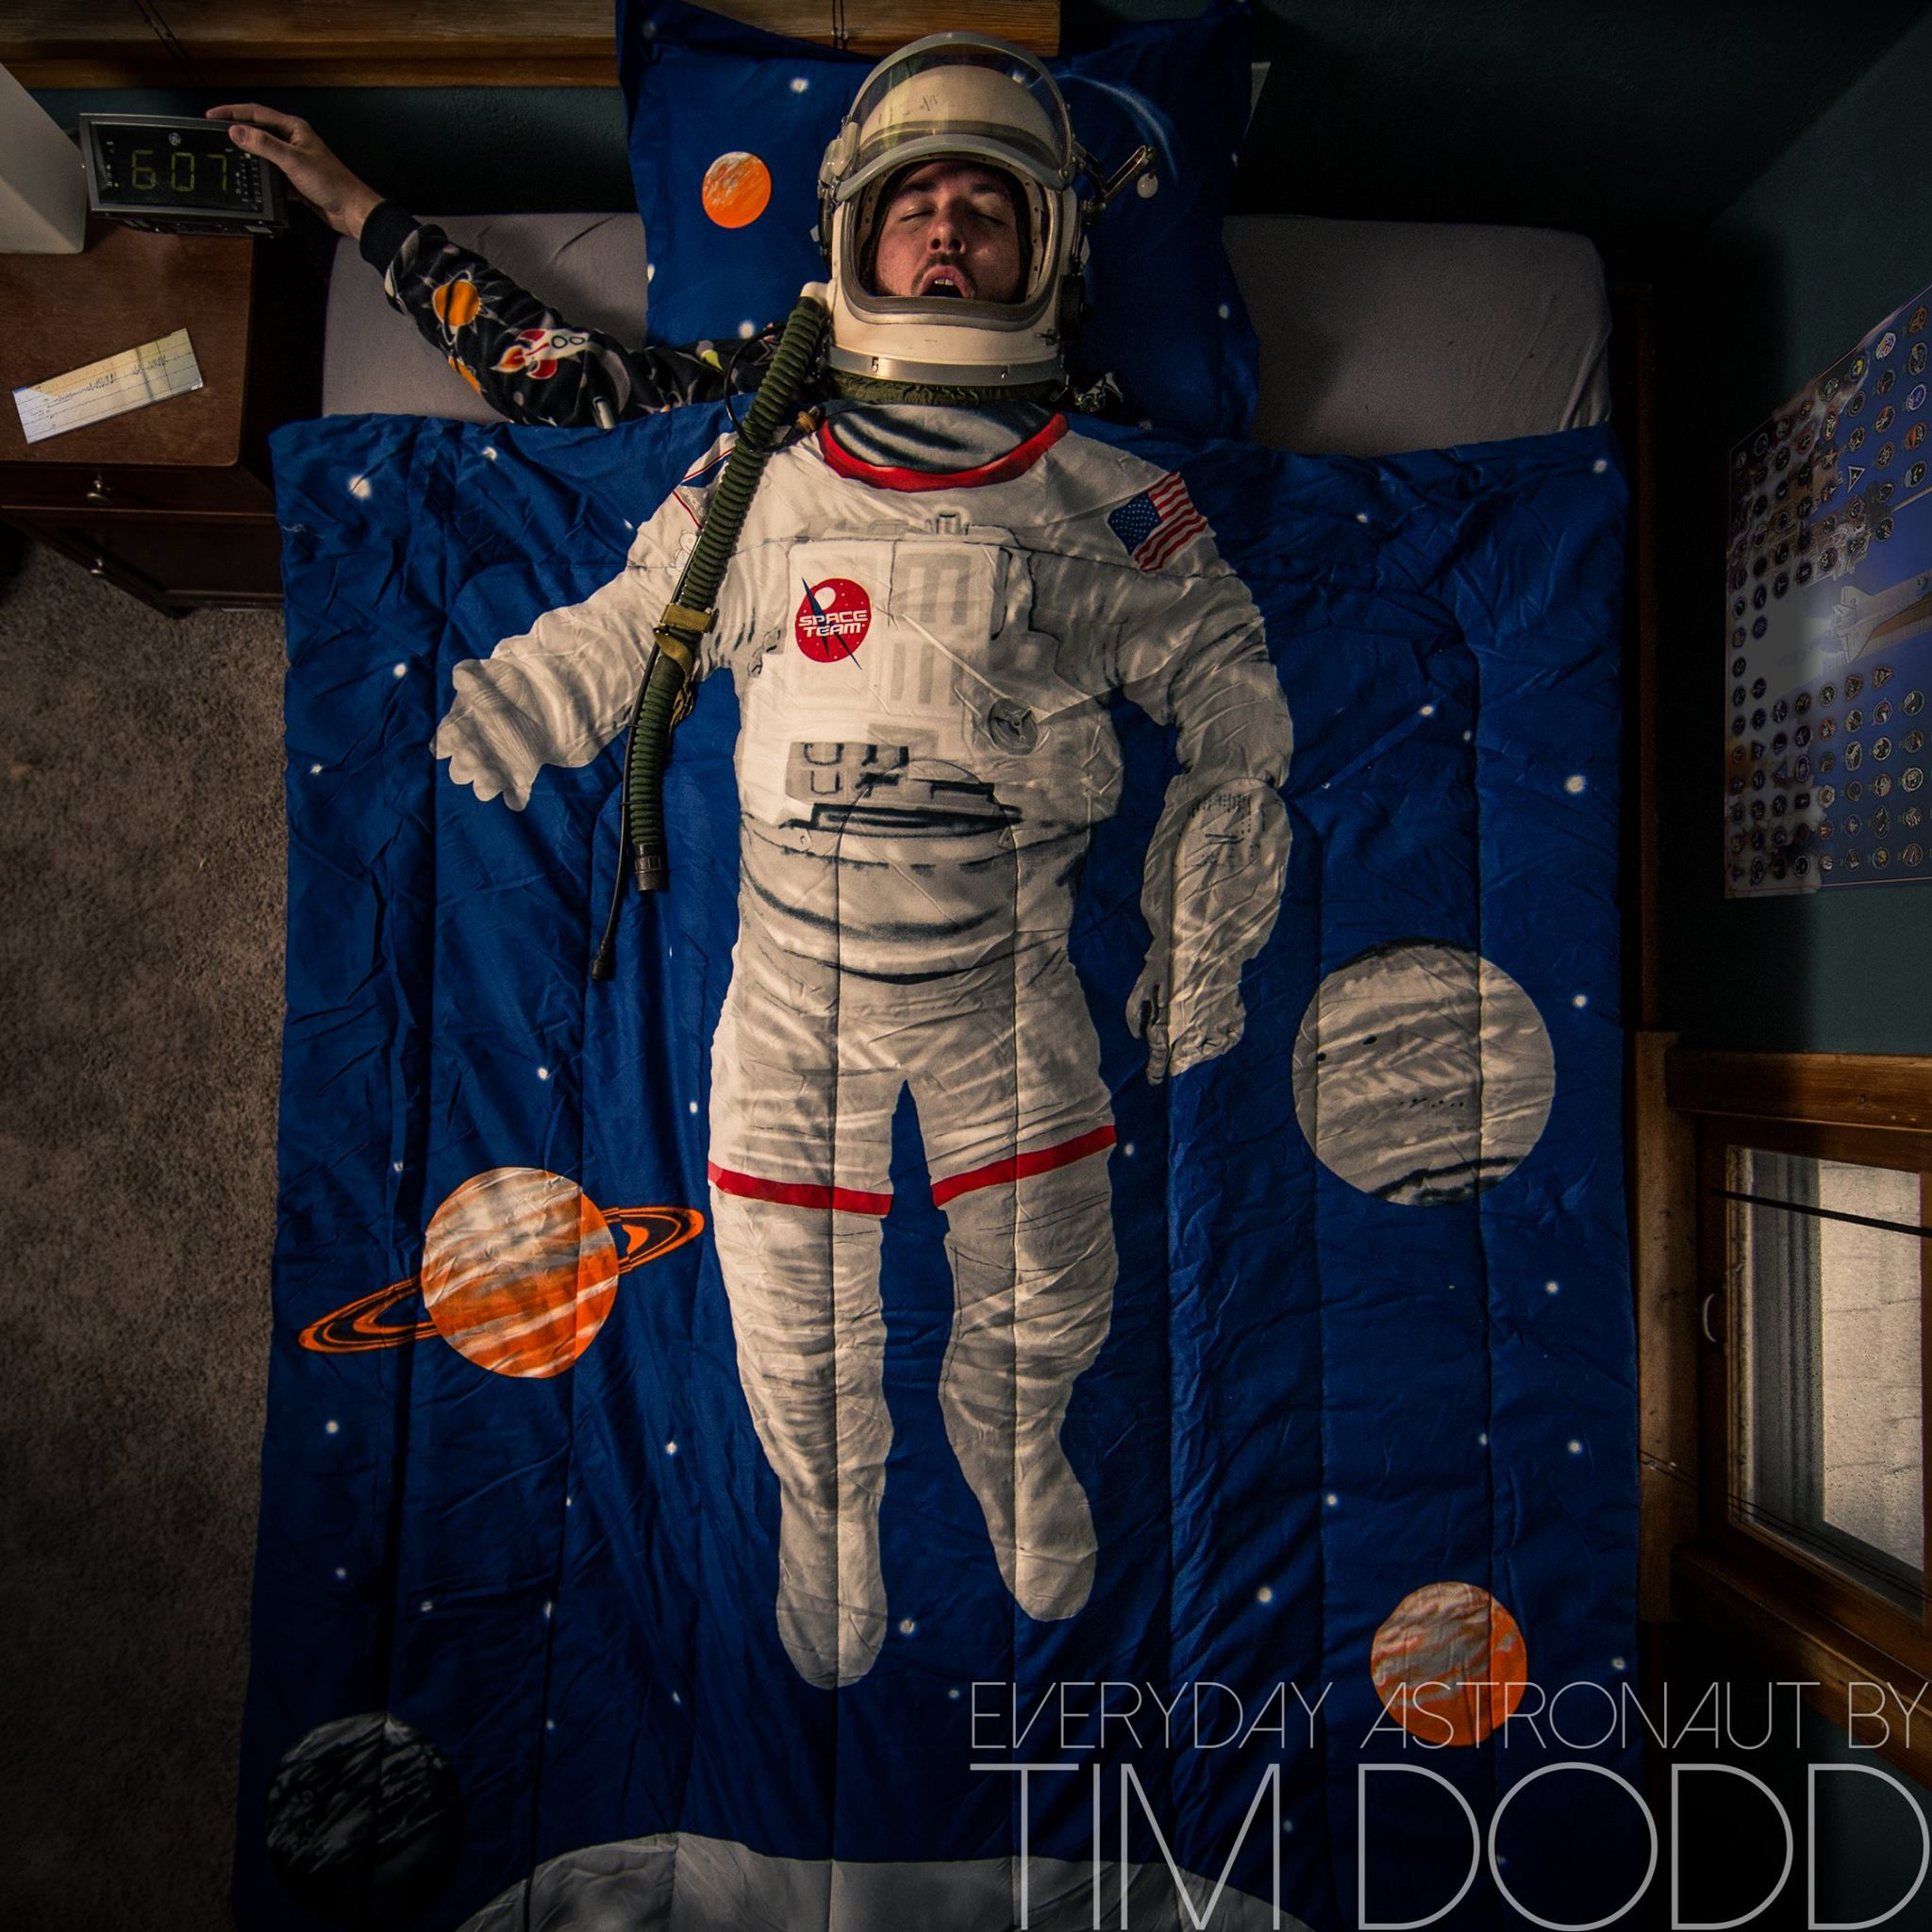 an astronaut in his space suit and with a propulsion - photo #12